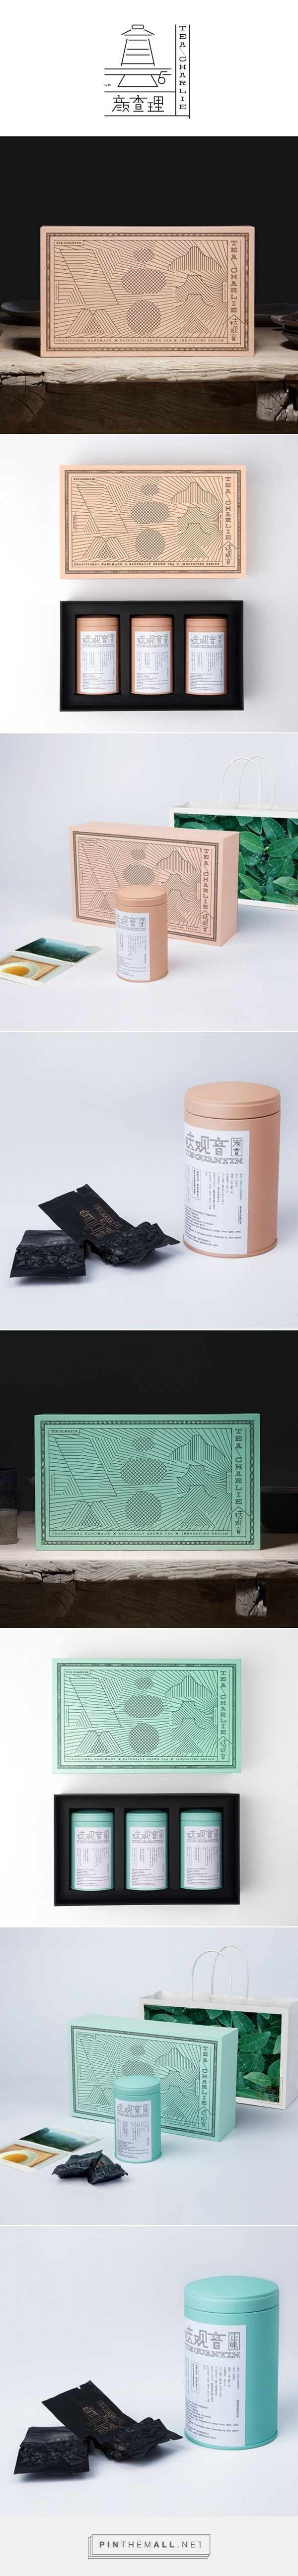 via iyeslogo curated by Packaging Diva PD. Charlie tea packaging design